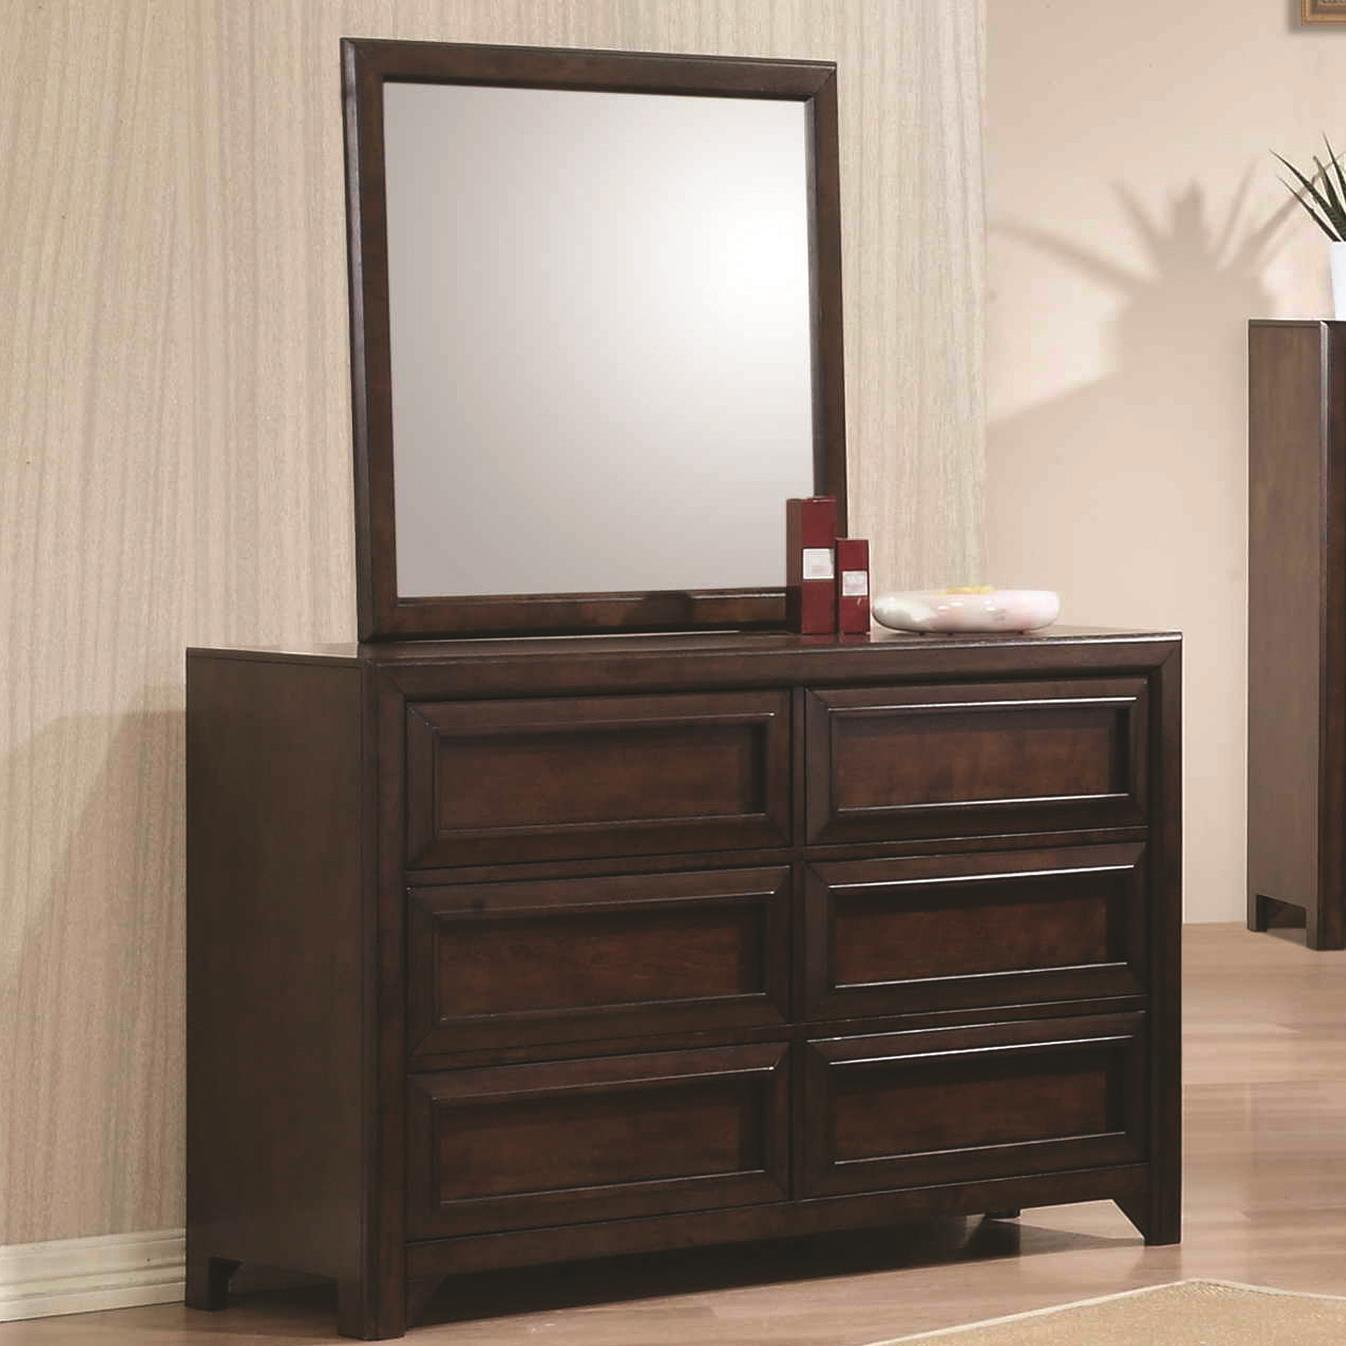 Greenough Dresser and Mirror by Coaster at Northeast Factory Direct